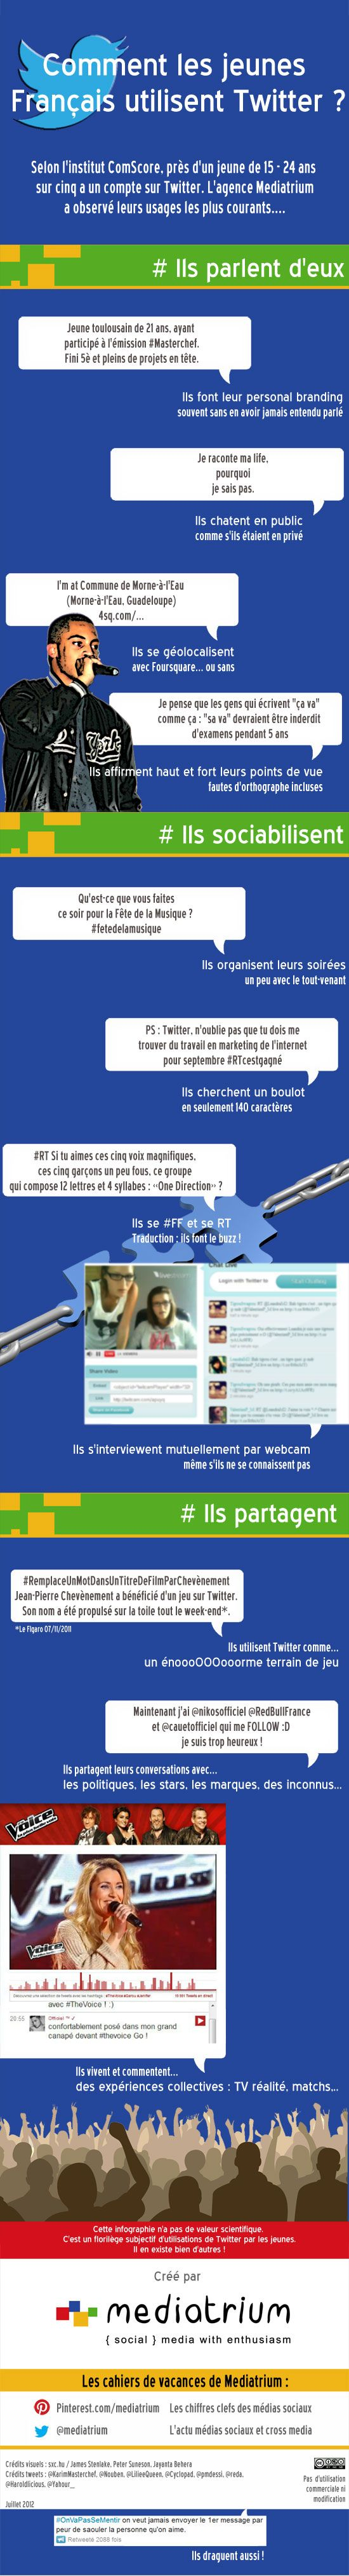 Infographic about how millenials (generation Y) use Twitter.  (infographic in french)